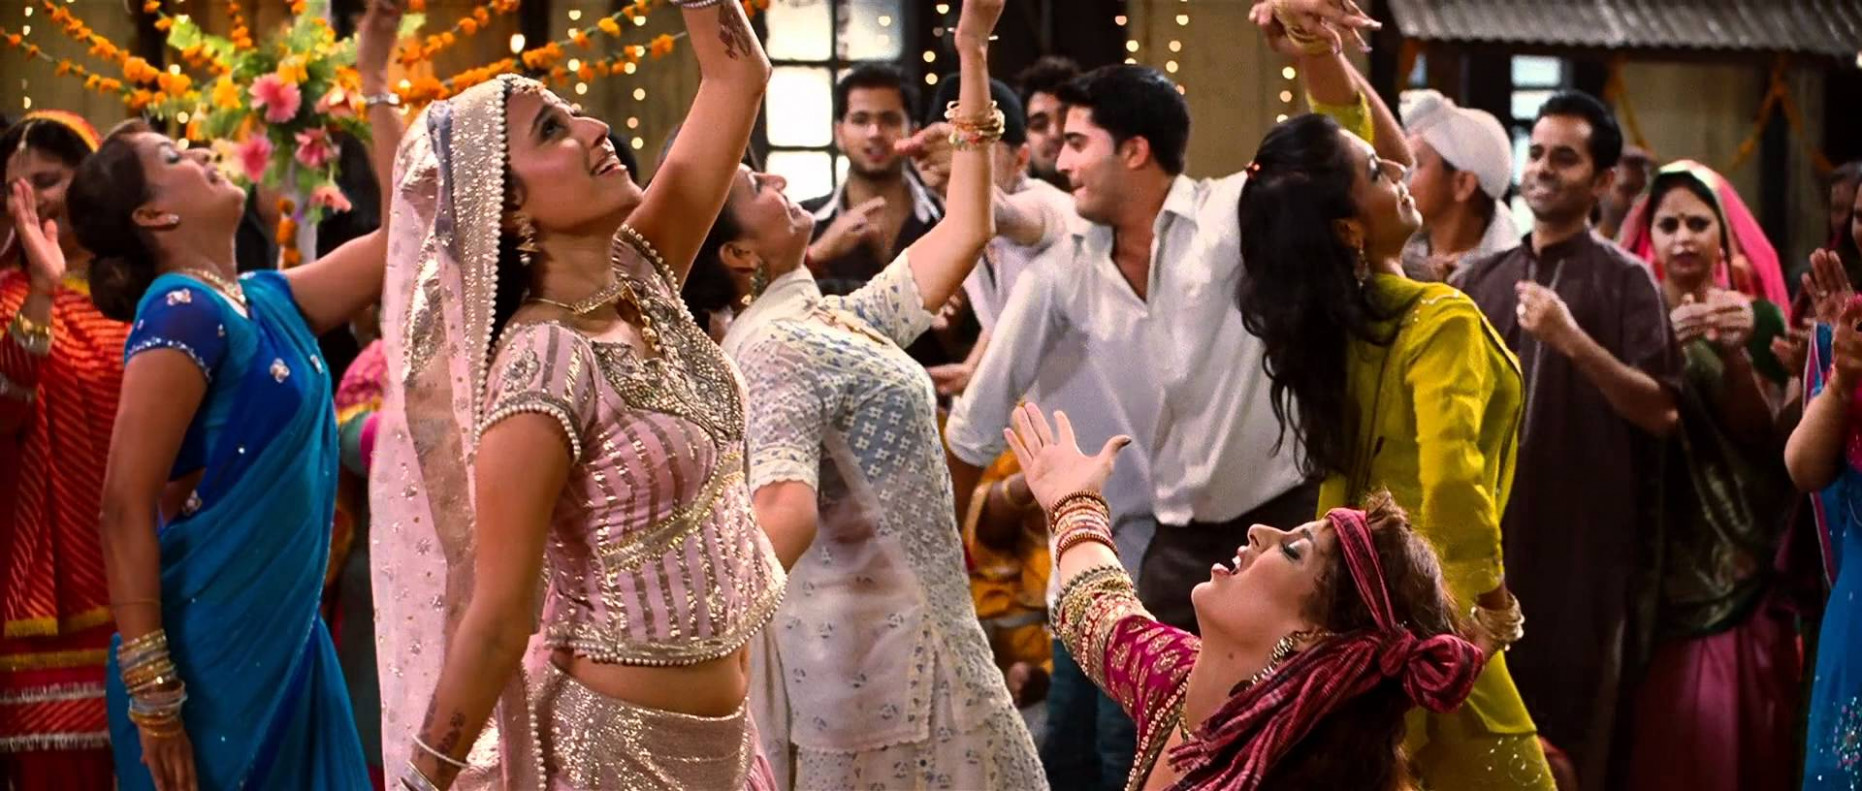 Top 10 Sangeet Songs for an Indian Wedding